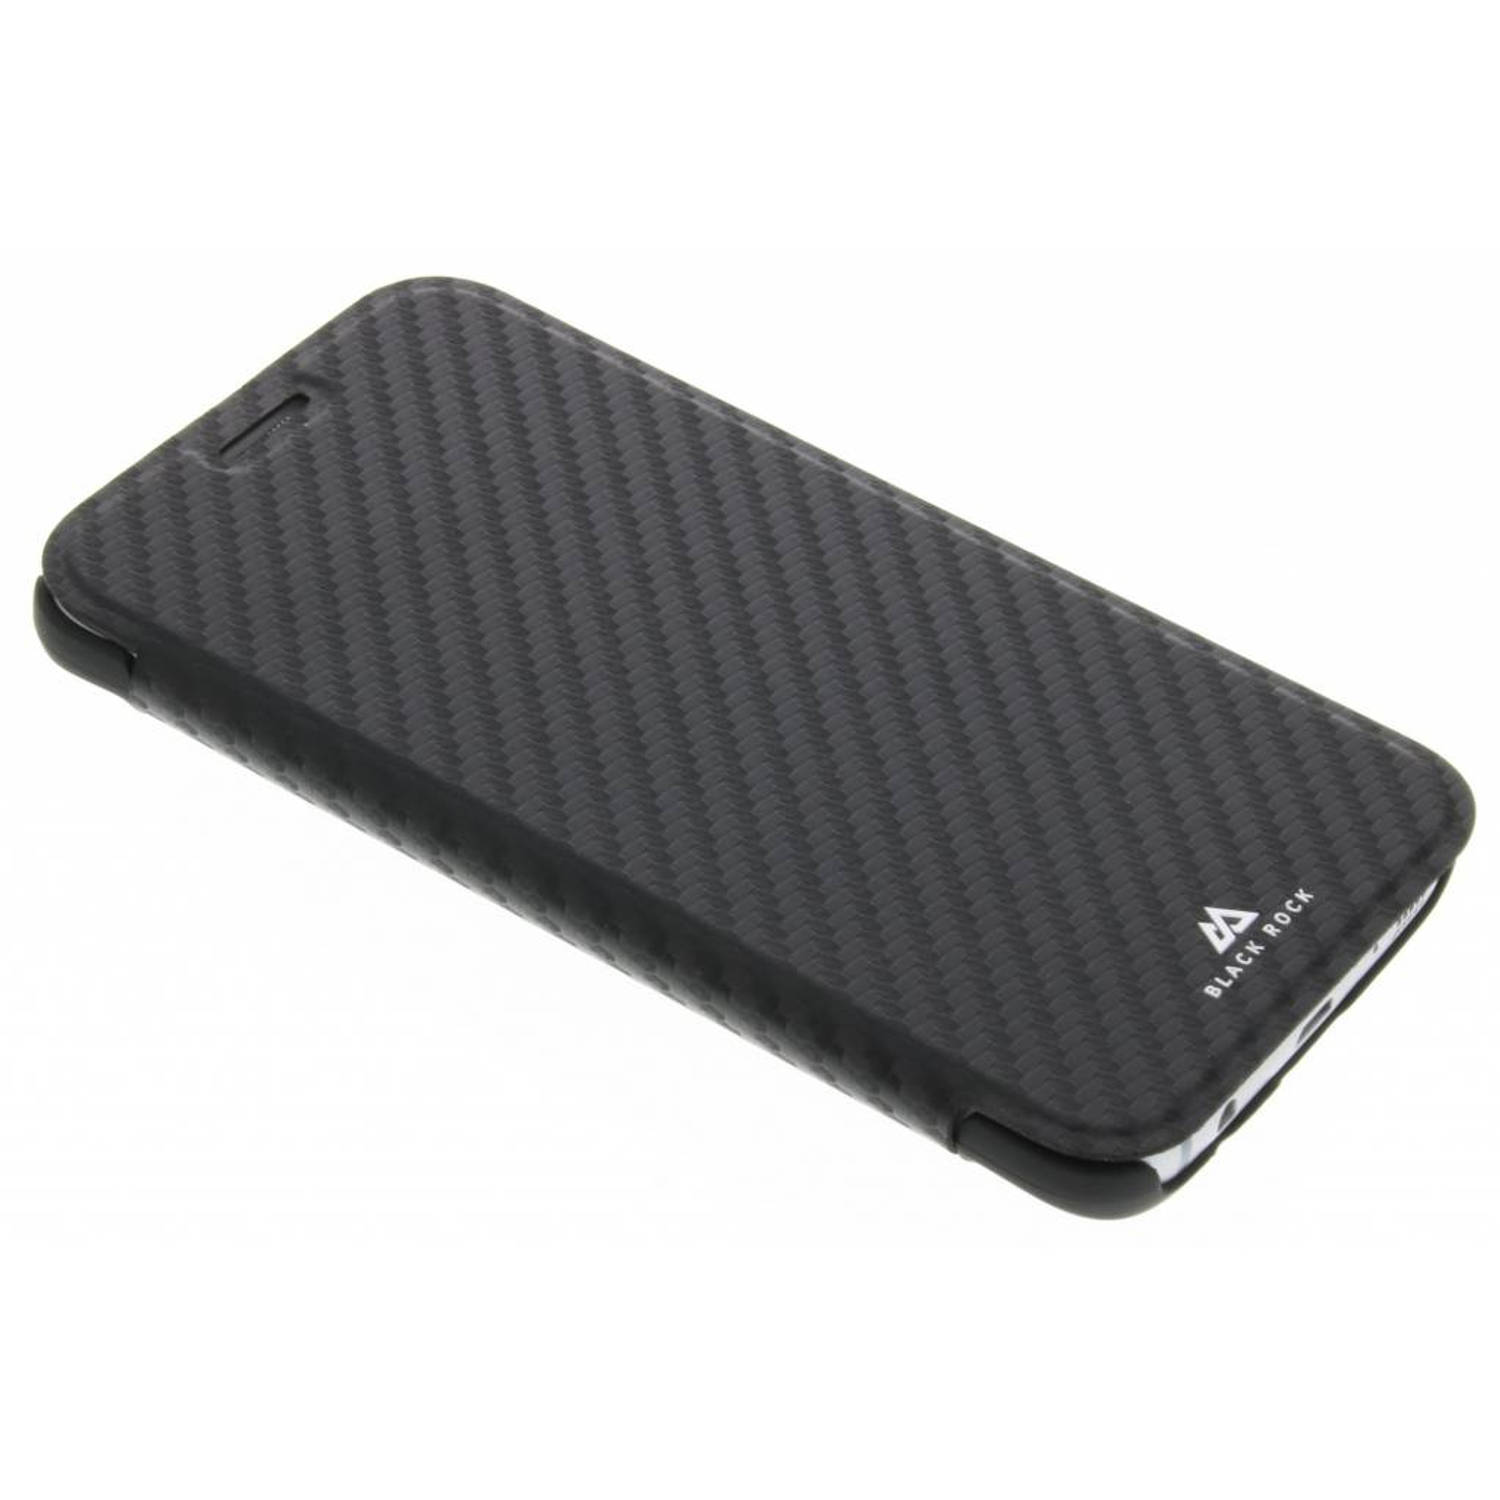 Zwarte Flex Carbon Booklet Case voor de Samsung Galaxy S7